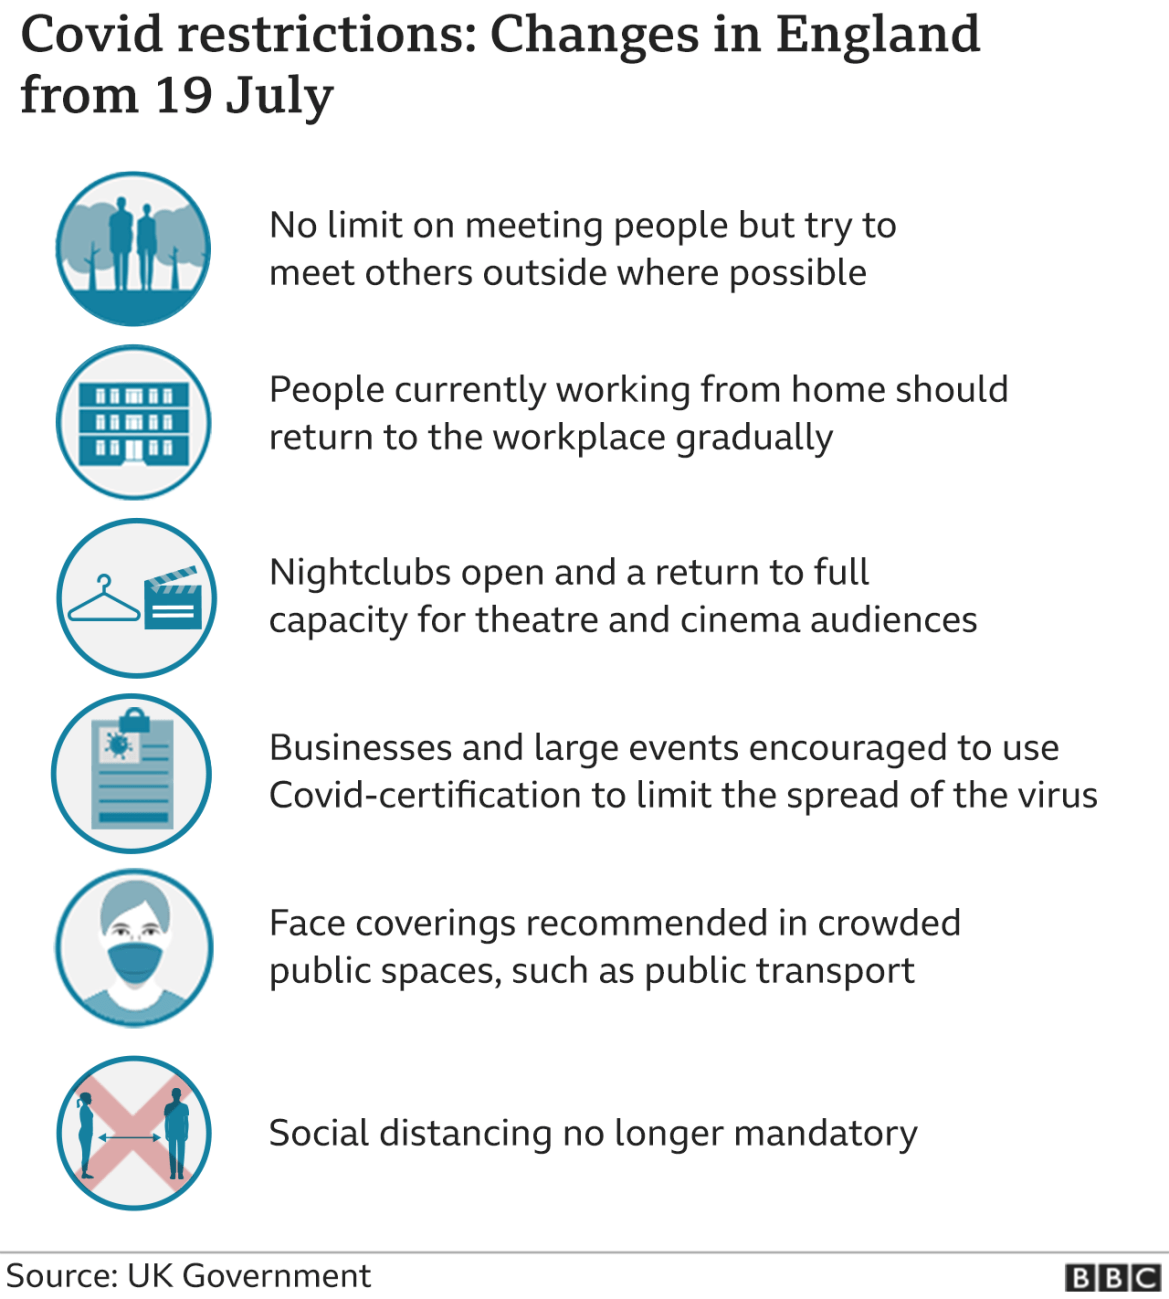 Graphic showing changes from 19 July